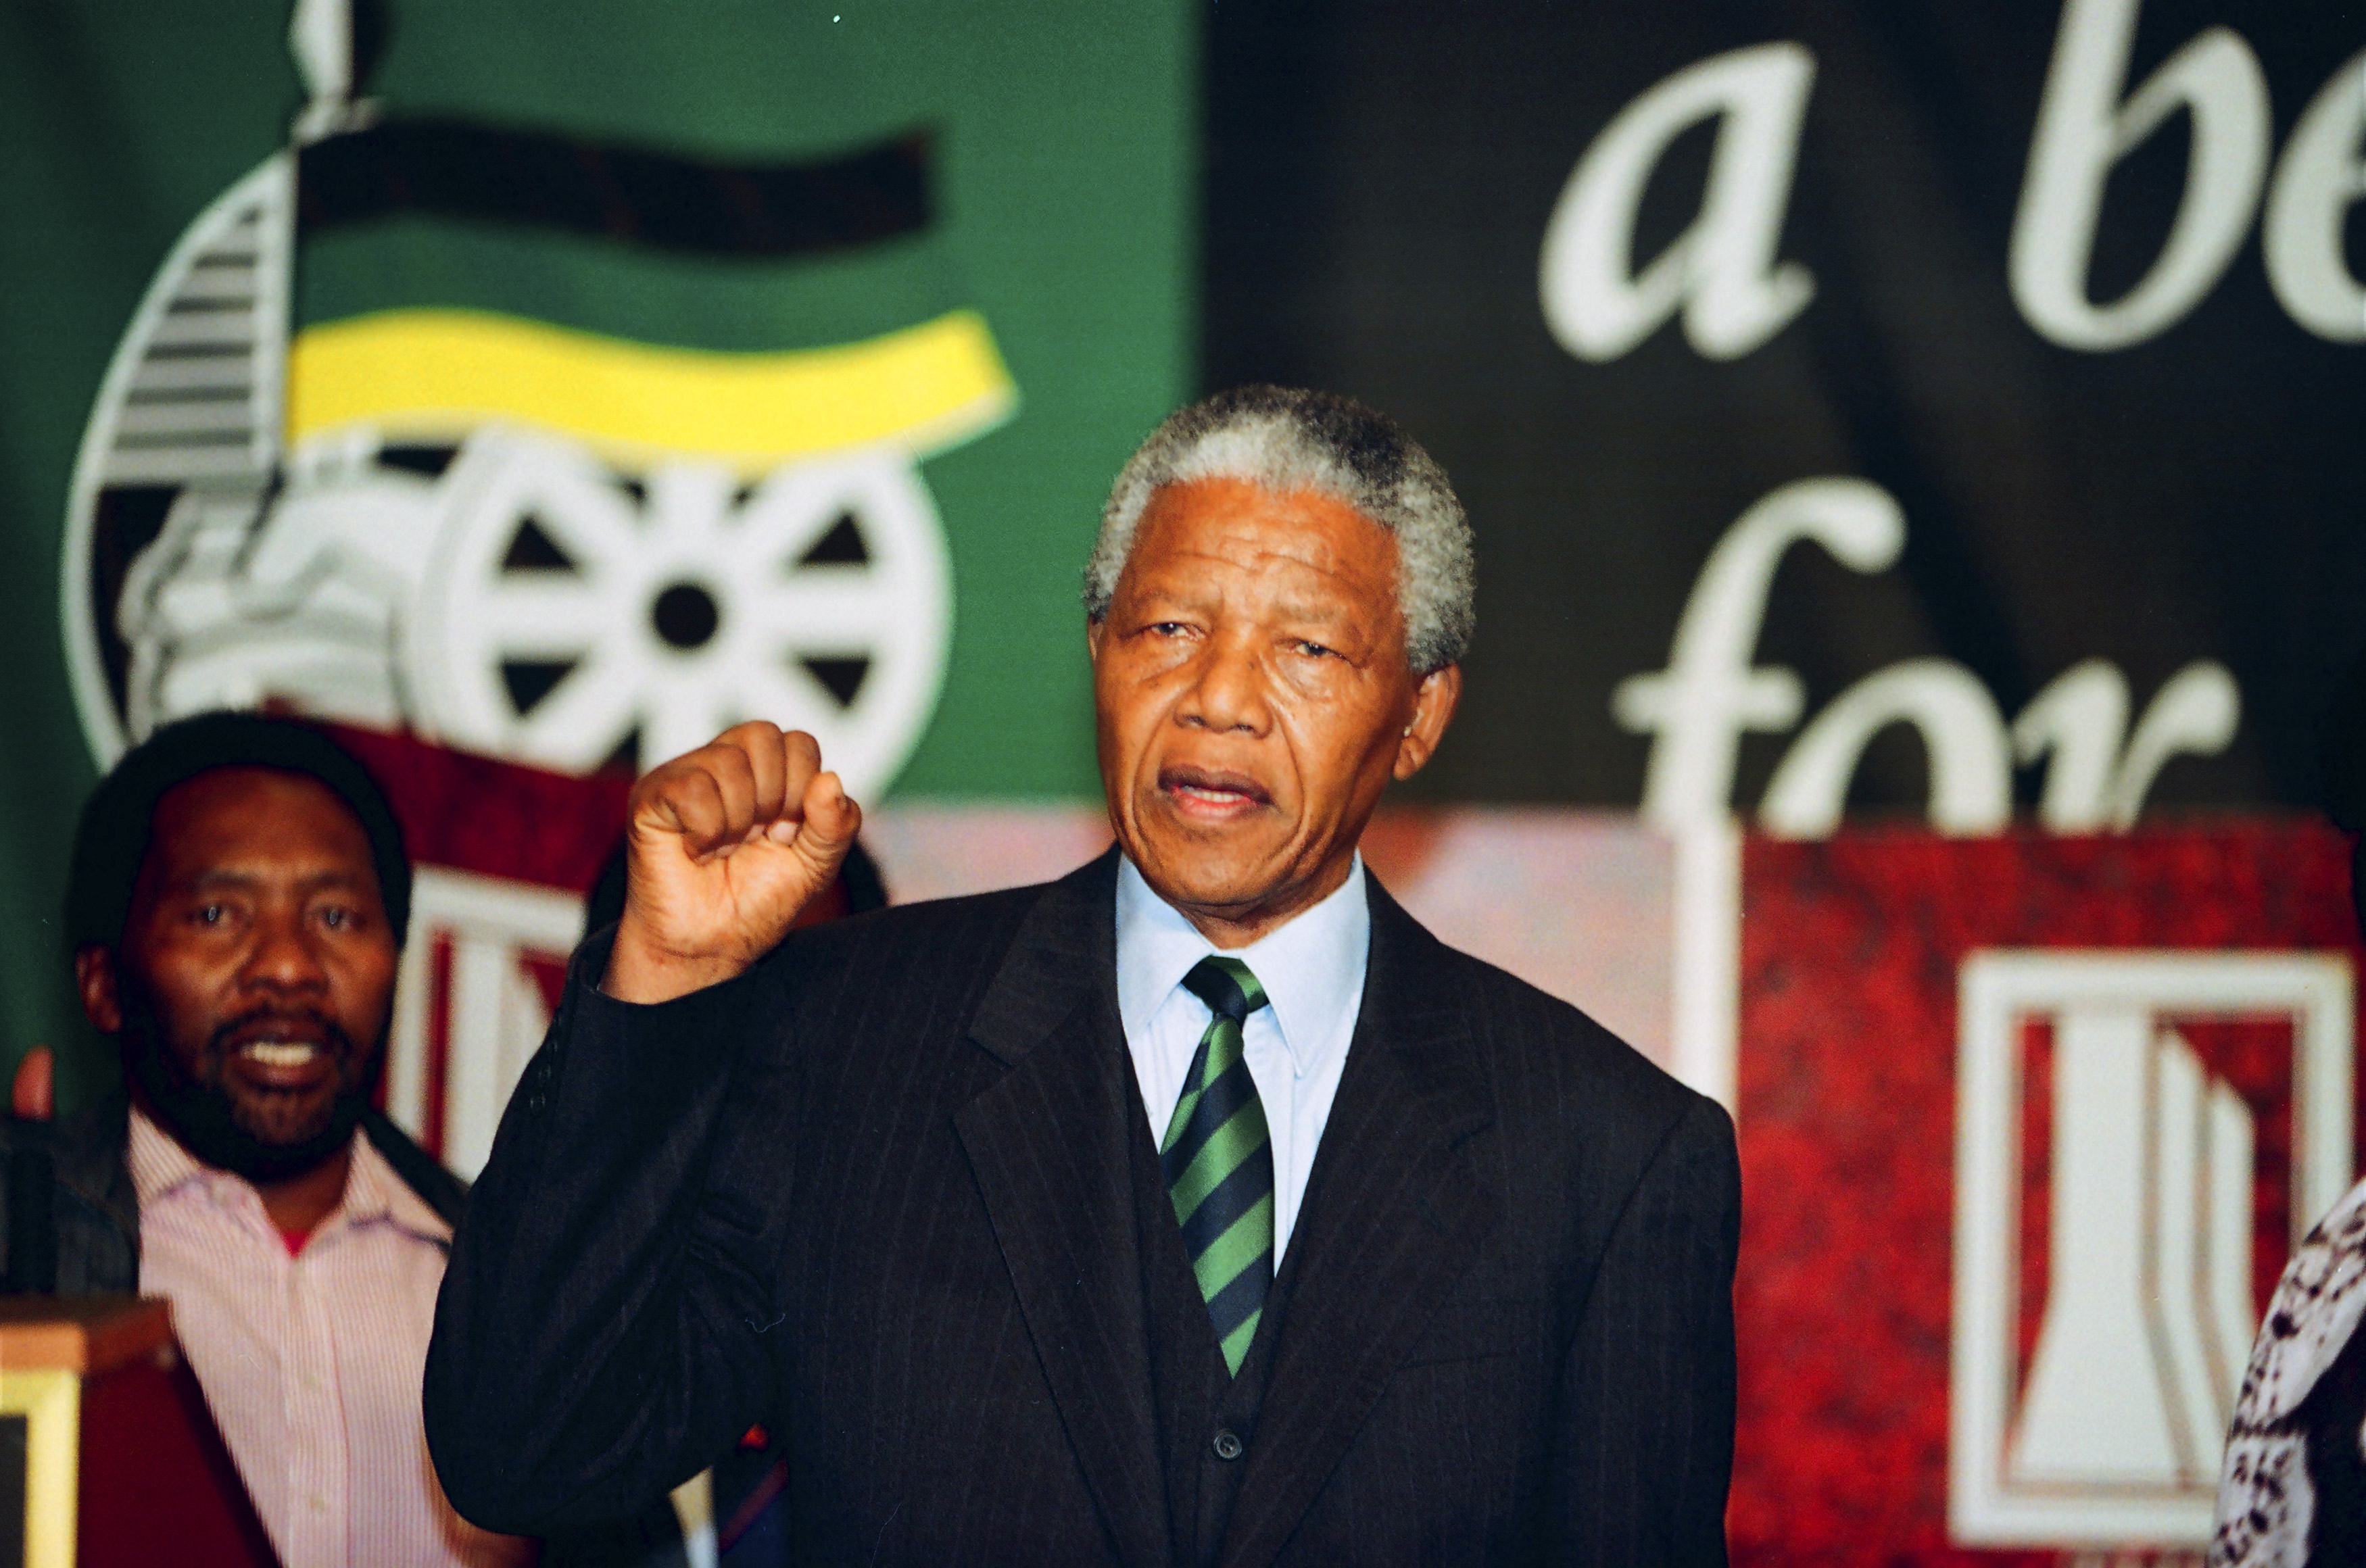 South Africa's President-elect Nelson Mandela (2nd L) holds his fist in the air at the African National Congress (ANC) following the announcement that his party had won the first free South African Presidential elections in Johannesburg May 2, 1994.  REUTERS/Peter Andrews (SOUTH AFRICA - Tags: POLITICS ELECTIONS) - RTX114R5